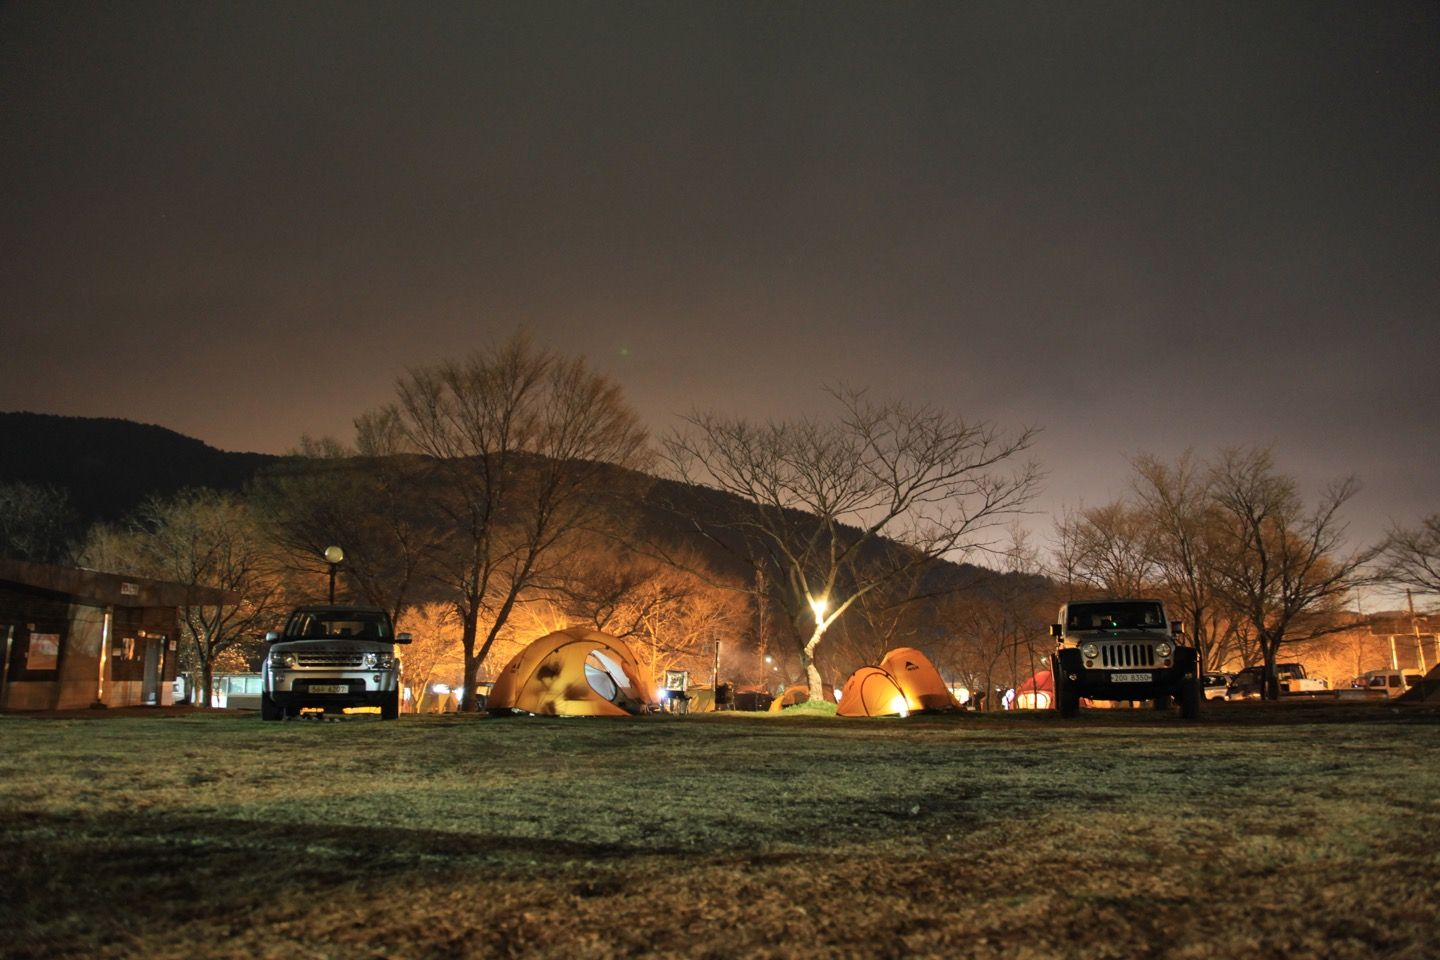 #Jeep #Wrangler #LandRover #Discovery4 #Camping #설악동야영장